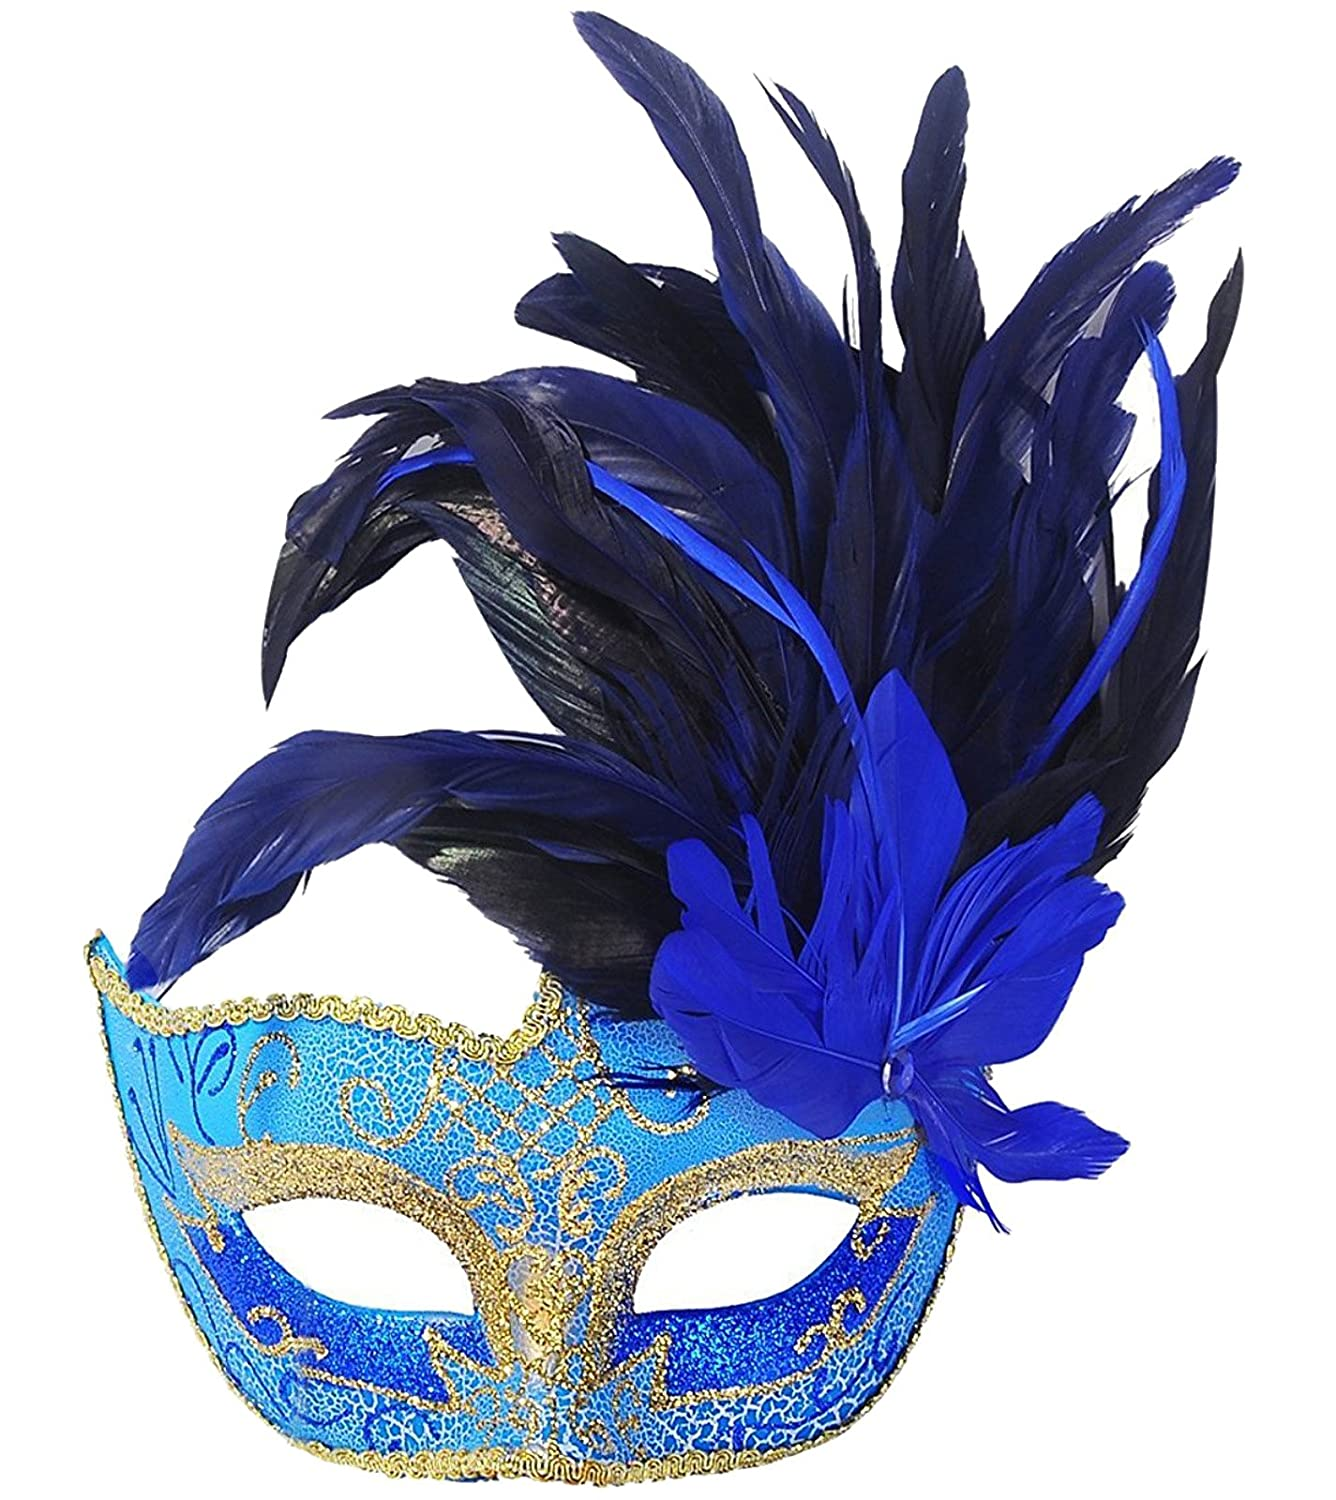 Sheliky Costume Mask Feather Masquerade Mask Halloween Mardi Gras Cosplay Party Masque